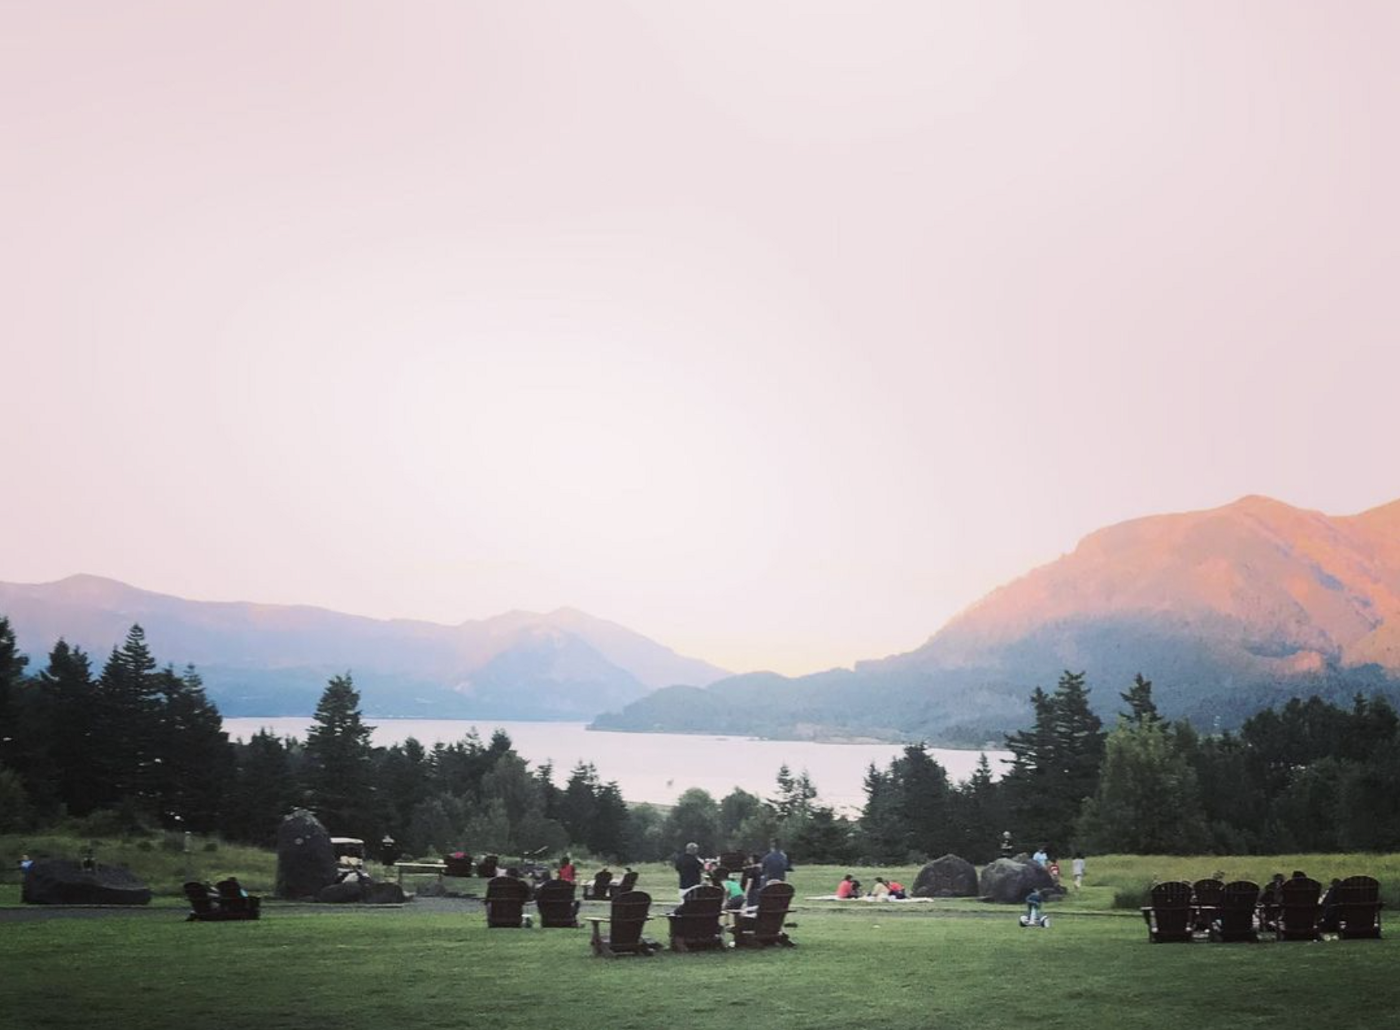 chairs on a grass hill overlooking river and surrounding hills in a pink dusk.